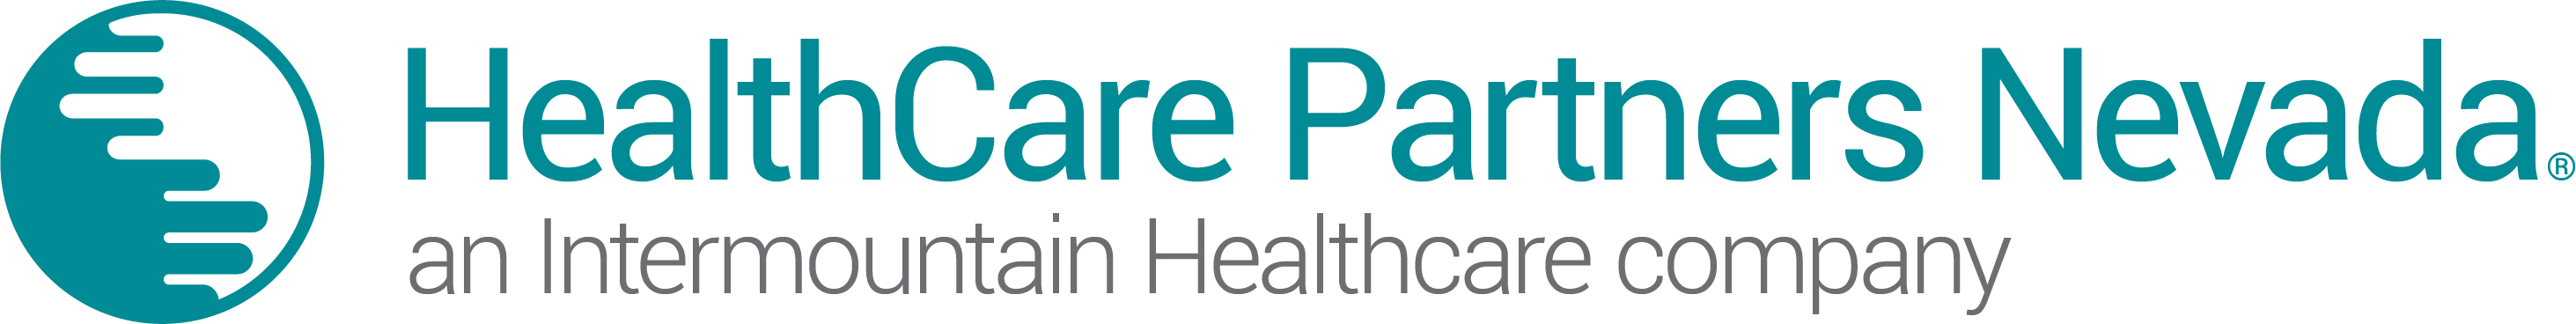 HealthCare Partners - Urogynecology Nurse Practitioner - HealthCare Partners, an Intermountain Healthcare Company